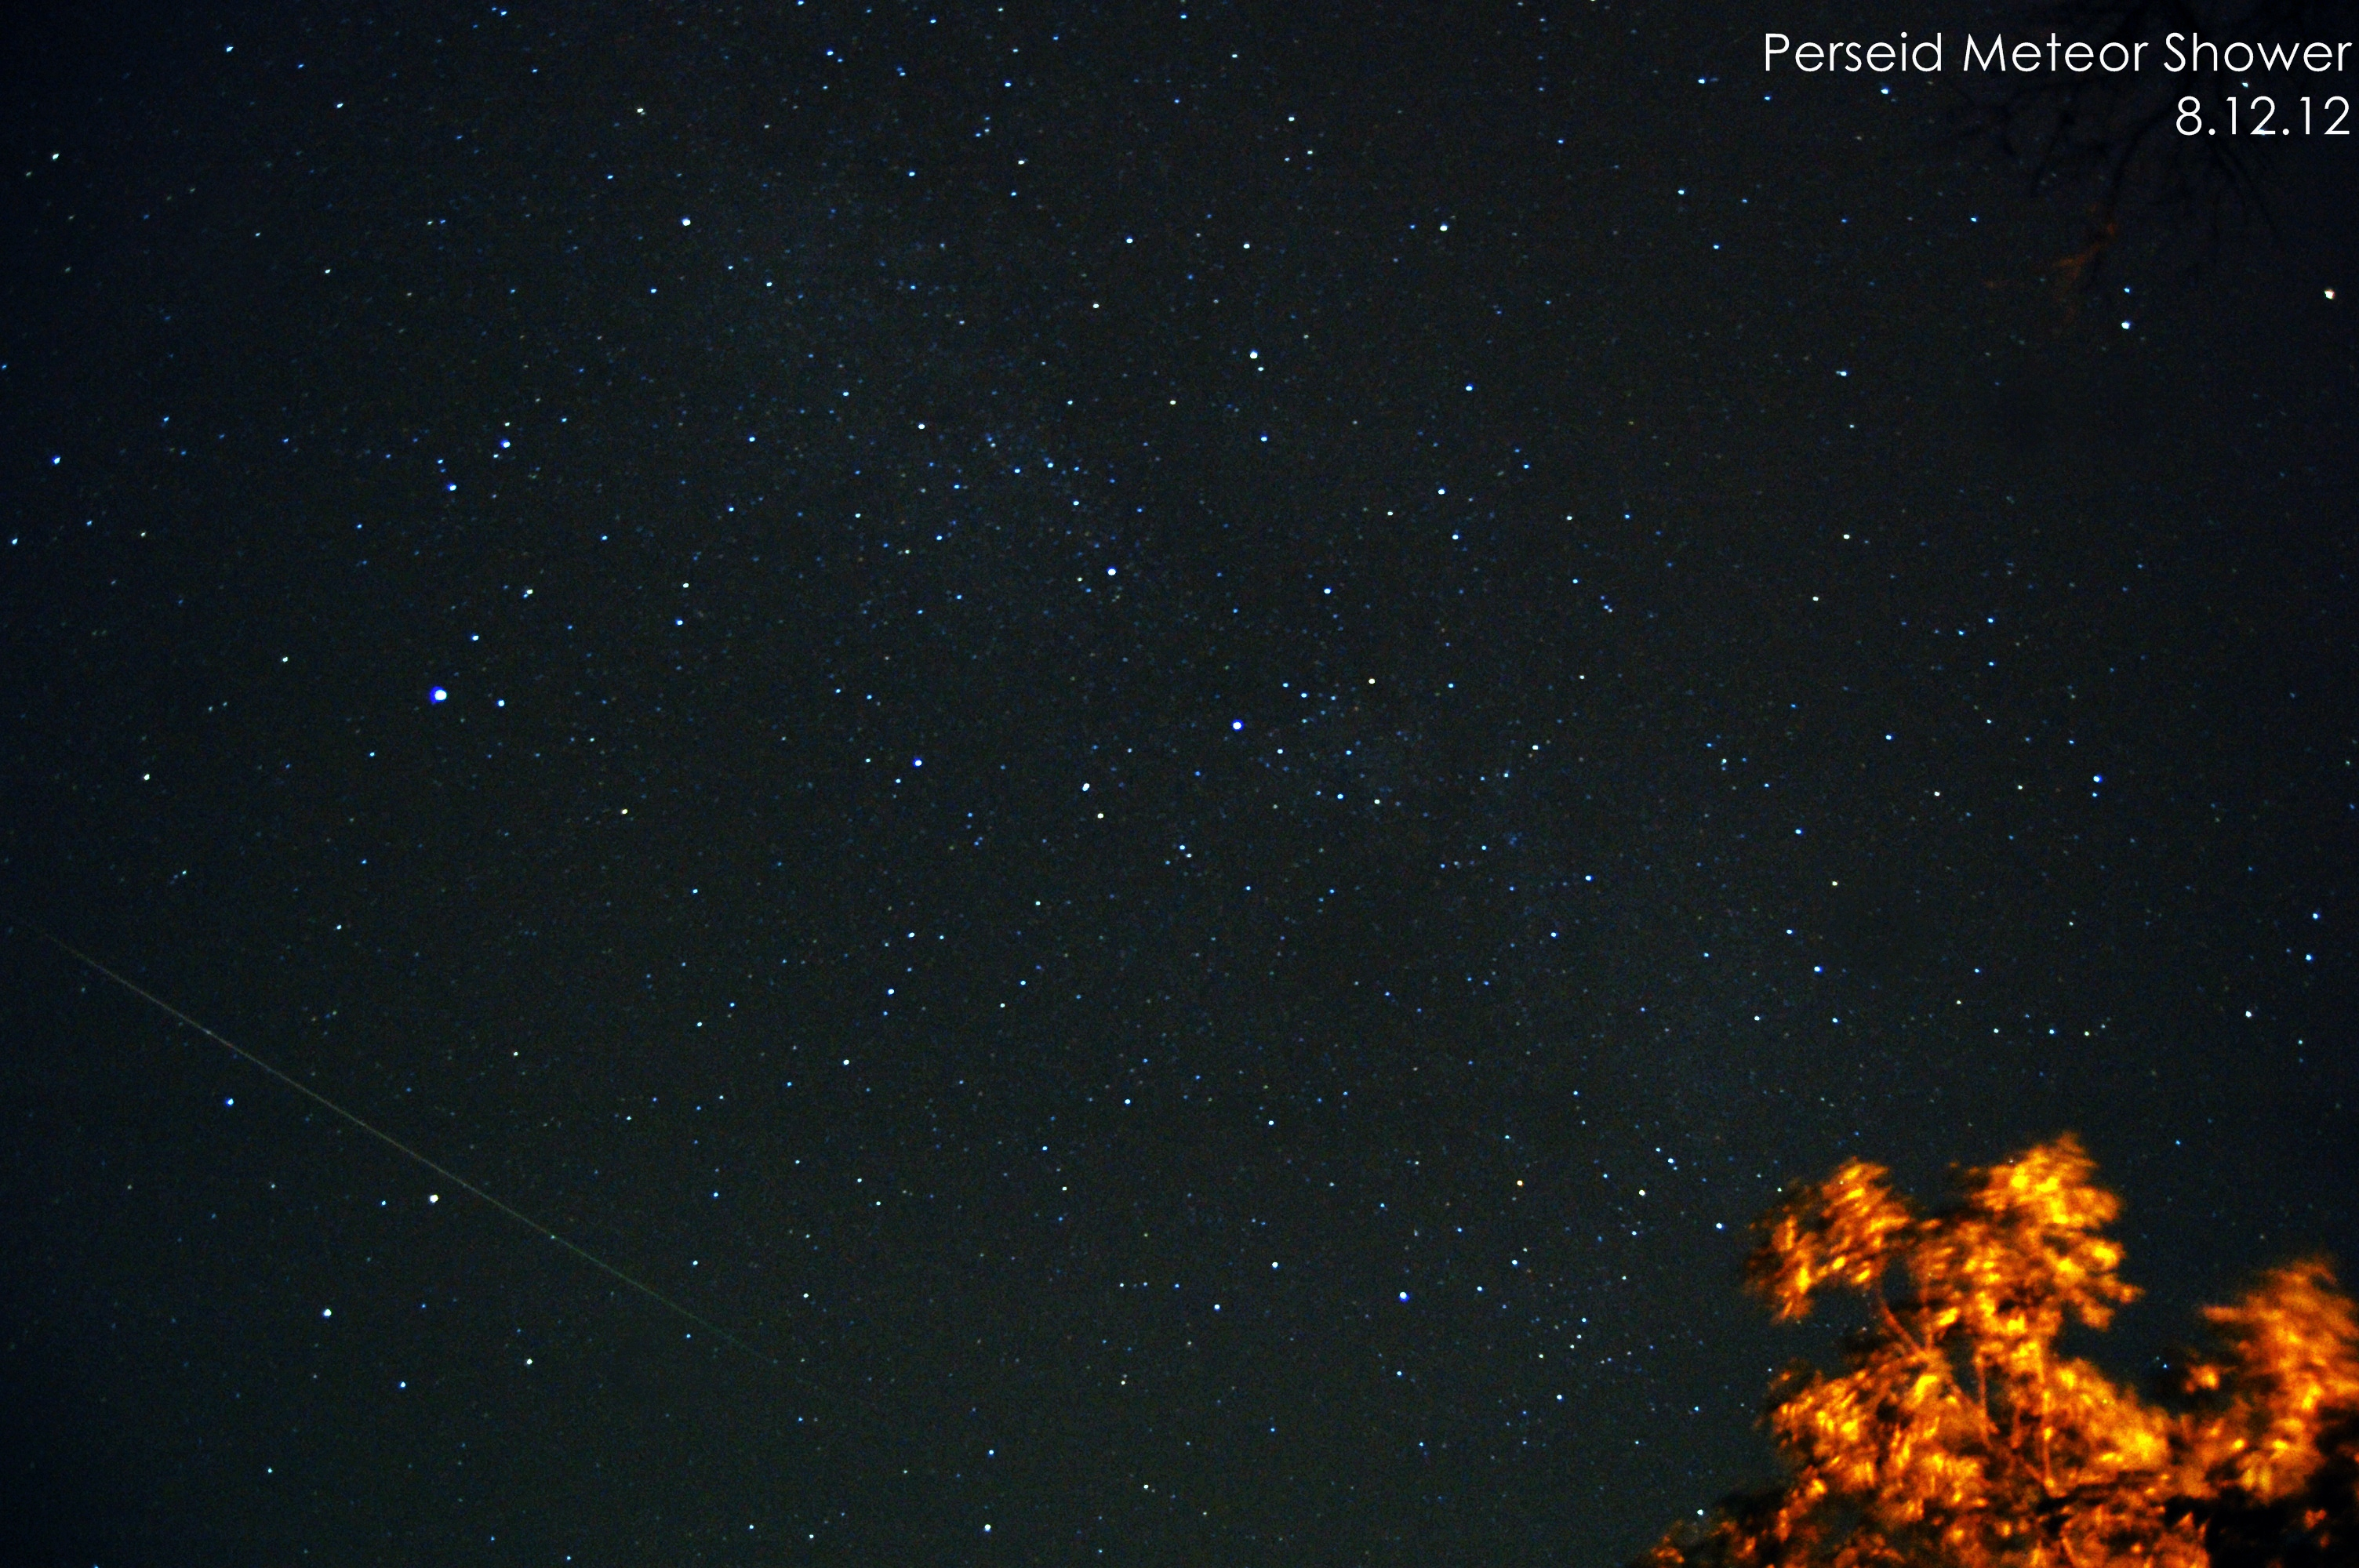 Perseid Meteor Shower 2012: Adrian Gutierrez